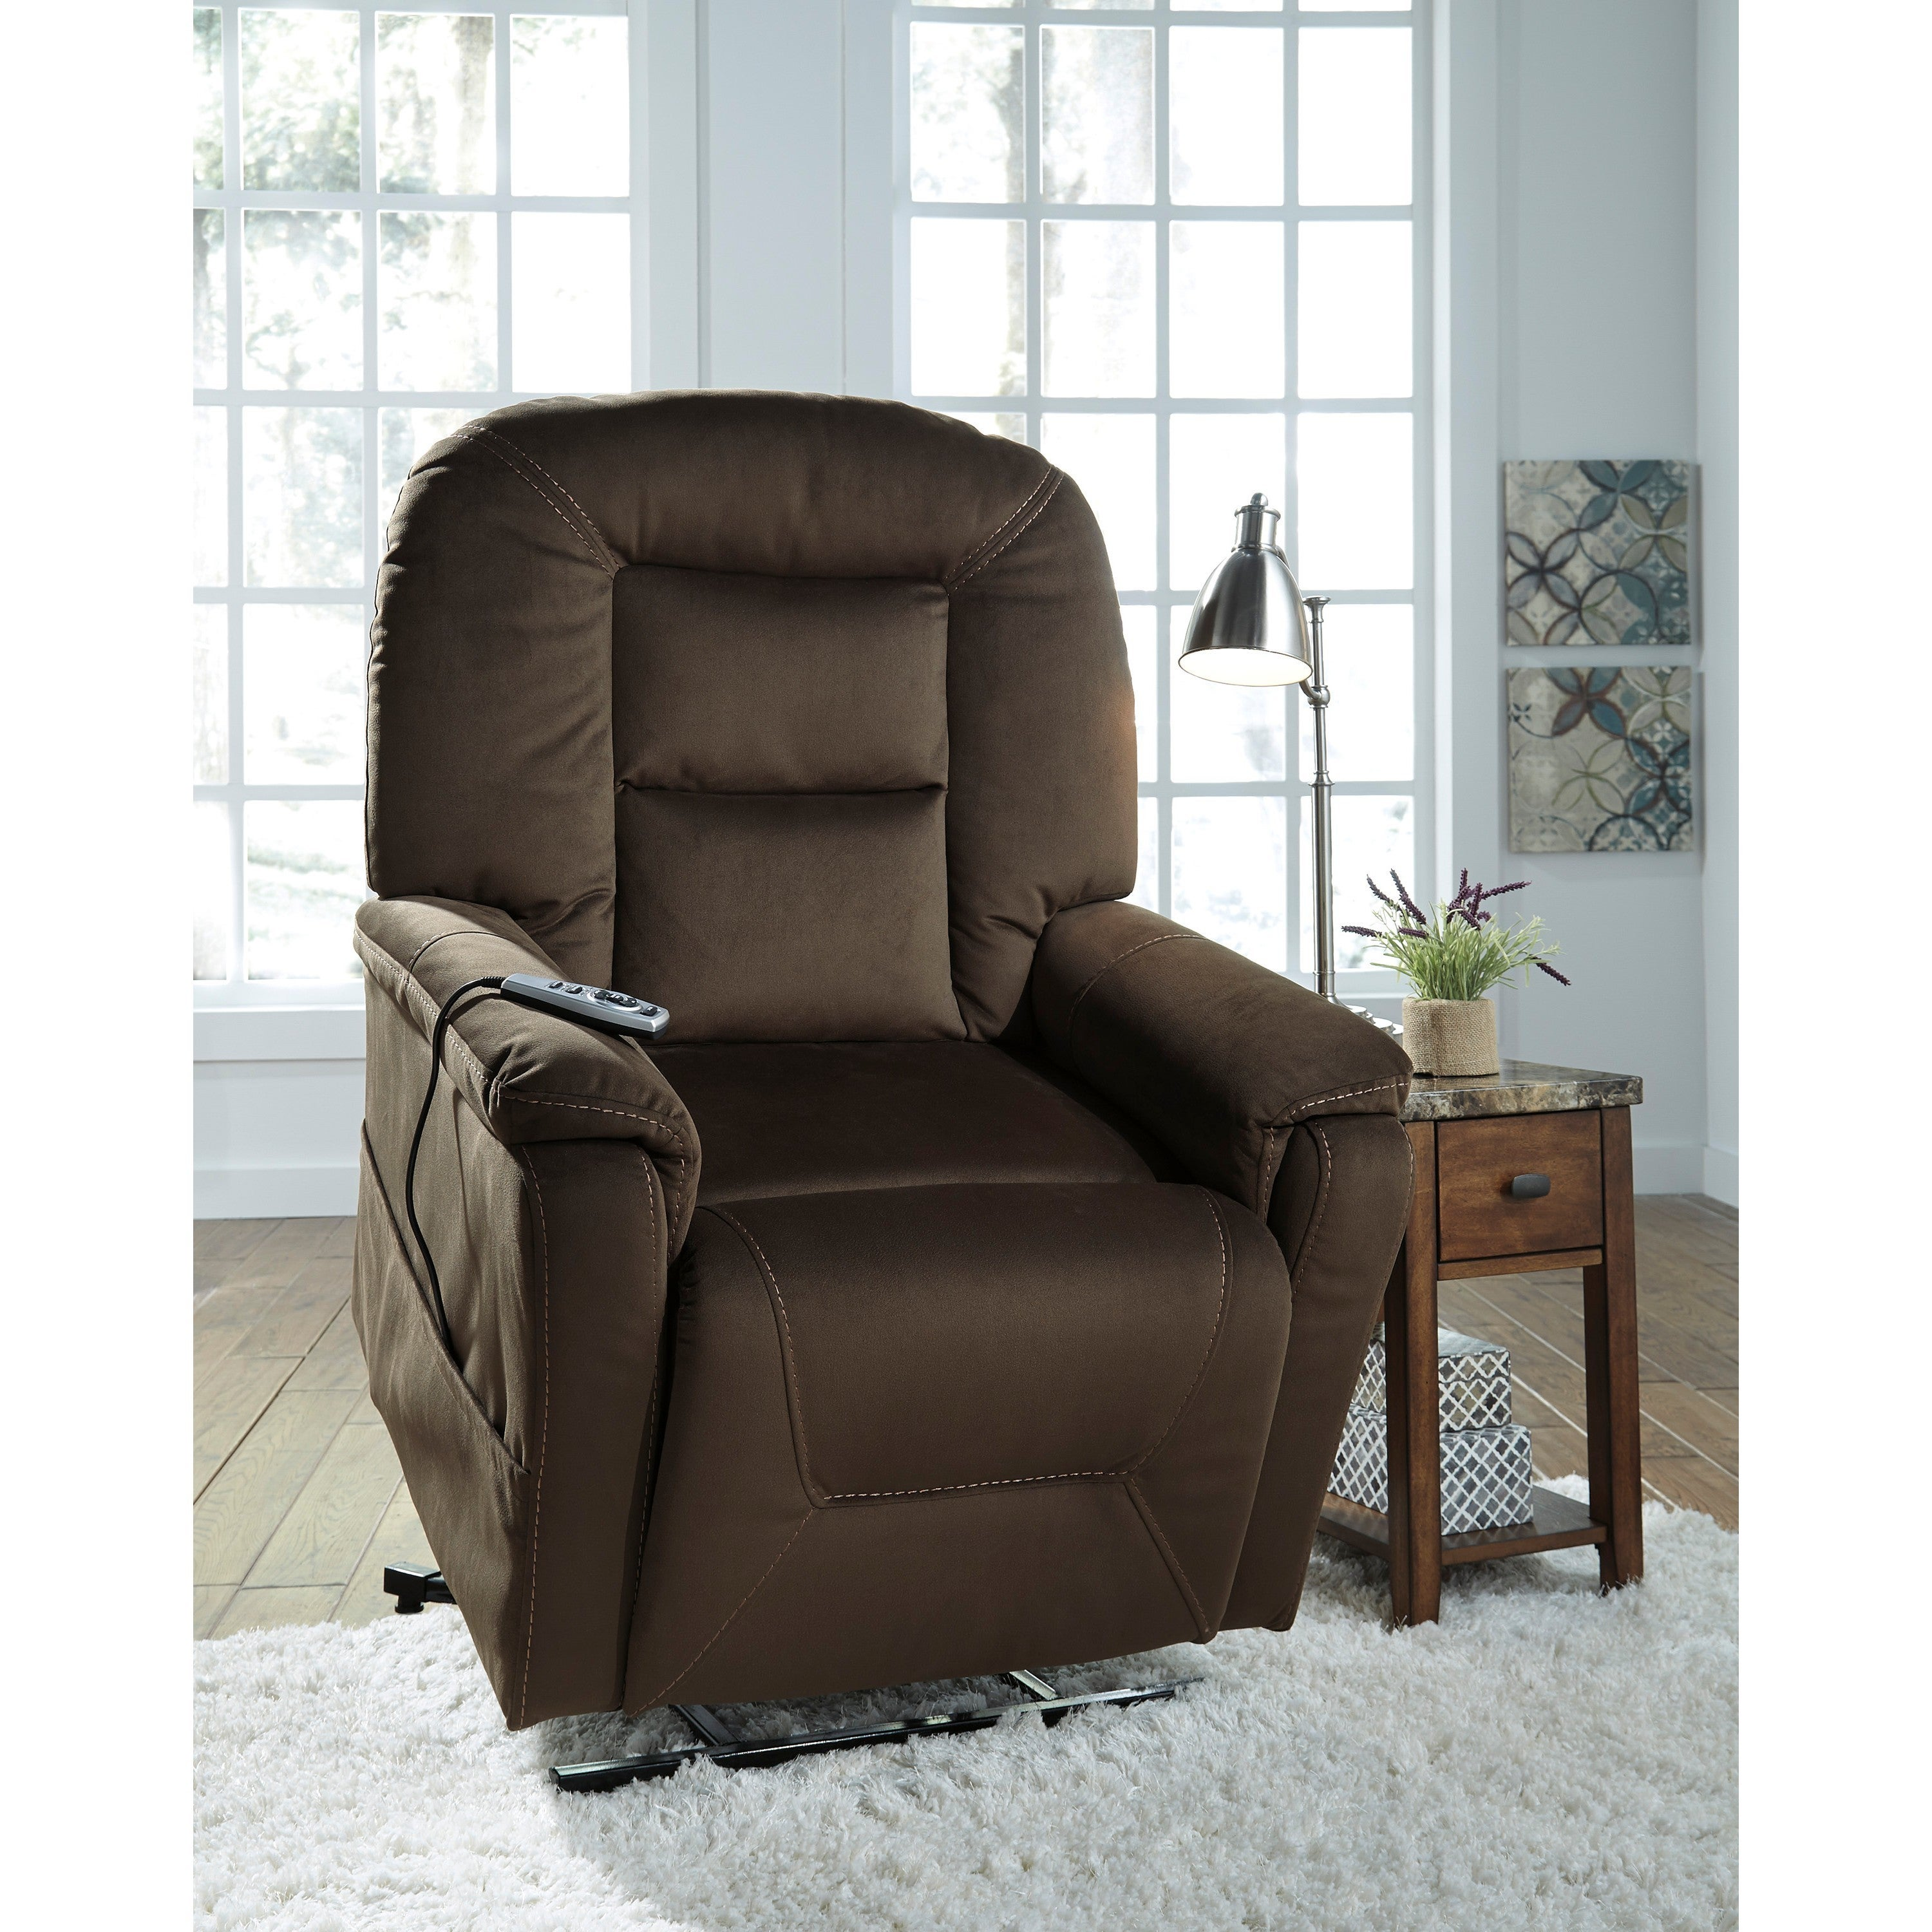 products item position recliner infinite chair flexsteel latitudes number orion lift chairs